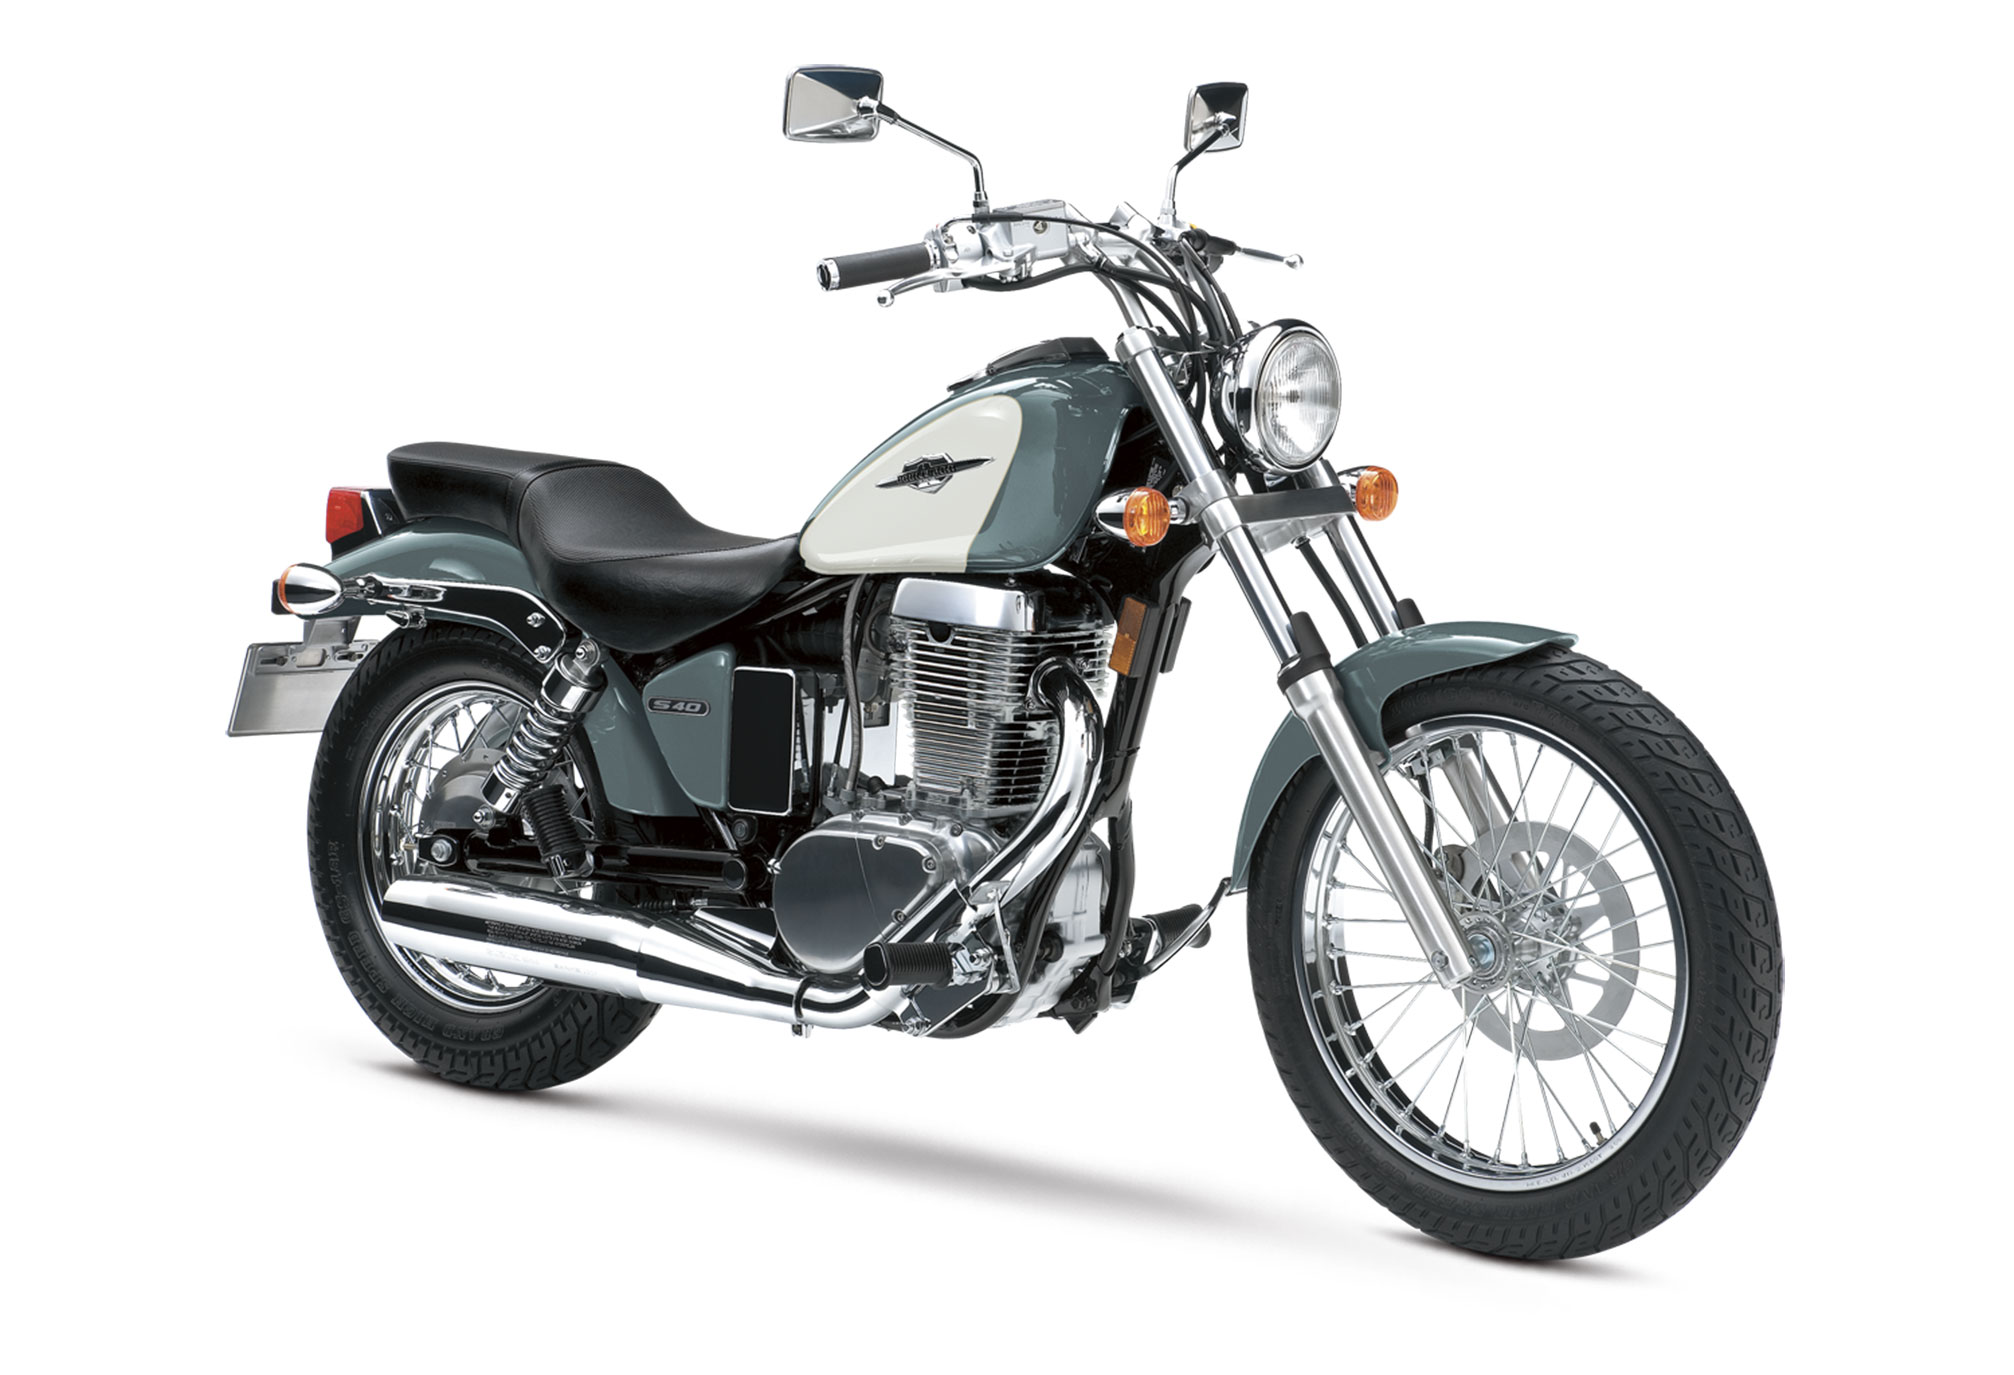 2014 suzuki boulevard s40 review. Black Bedroom Furniture Sets. Home Design Ideas